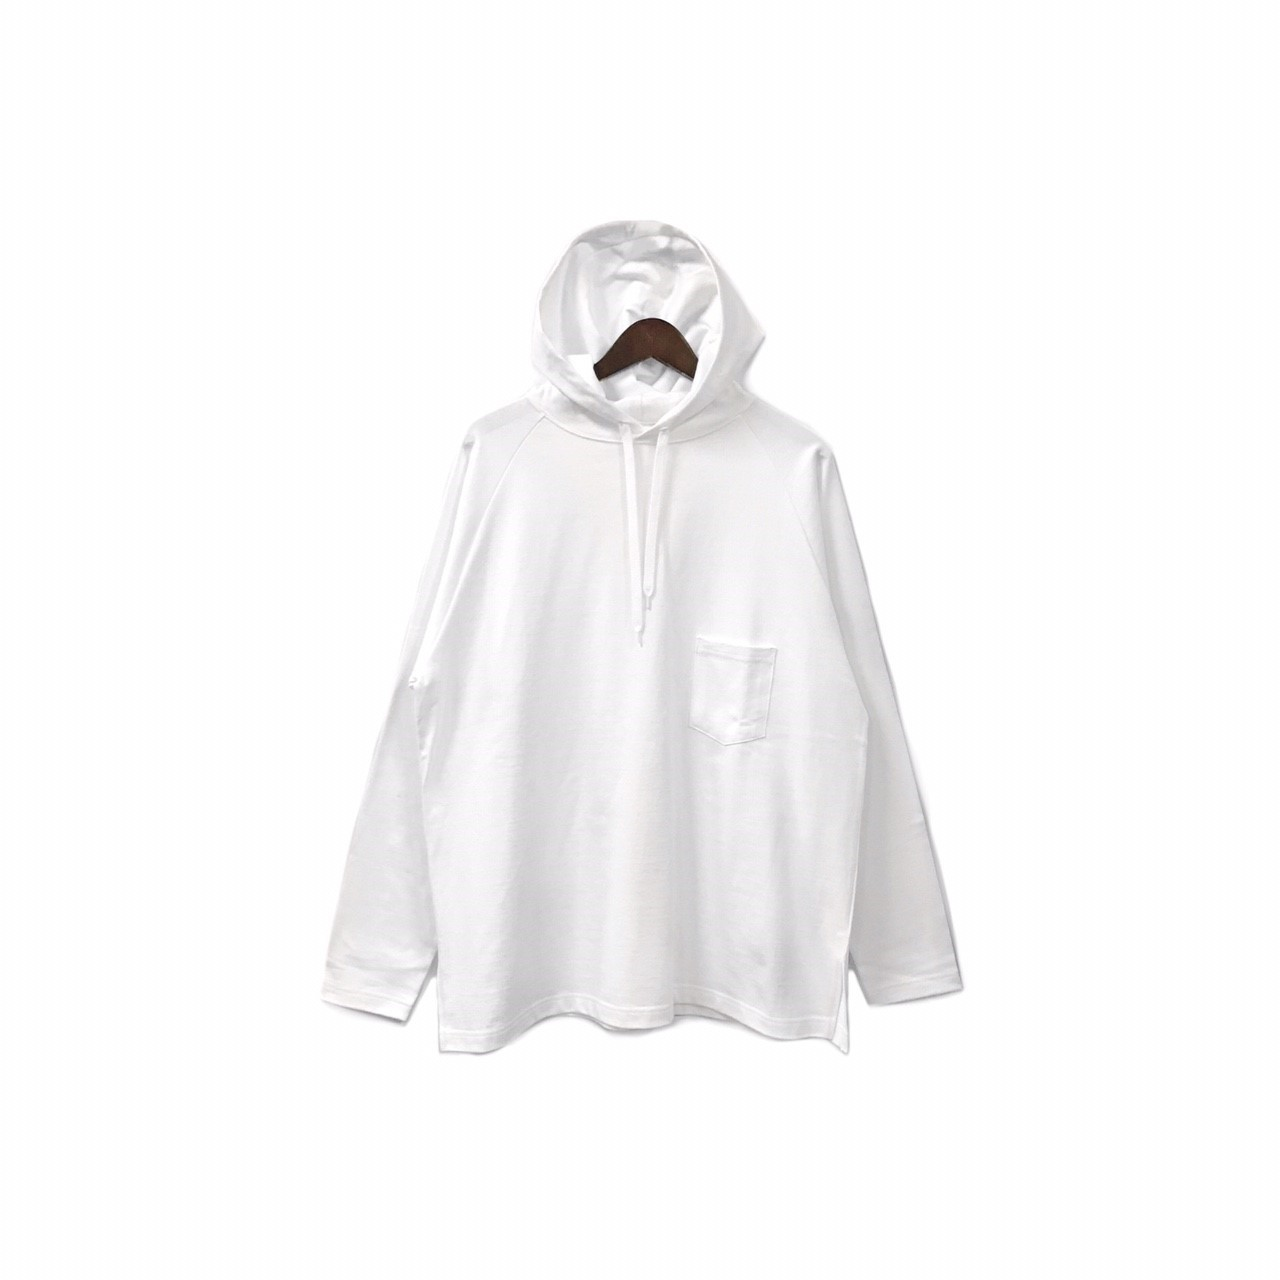 yotsuba - Hooded Cut&Sew / White ¥12000+tax